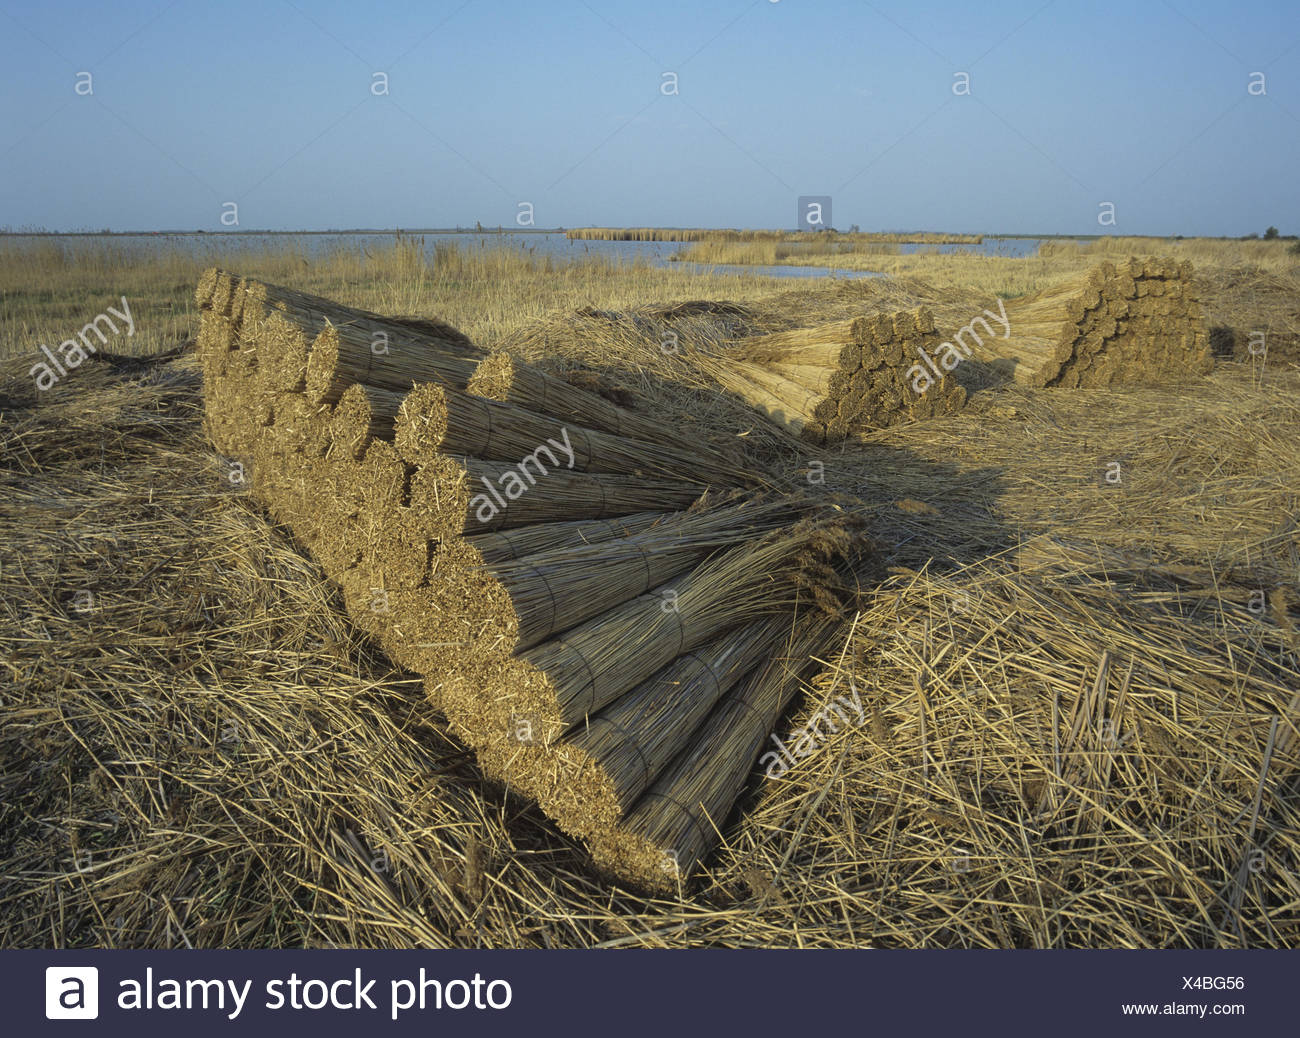 Austria, Burgenland, new colonist lake, reed, tract, - Stock Image